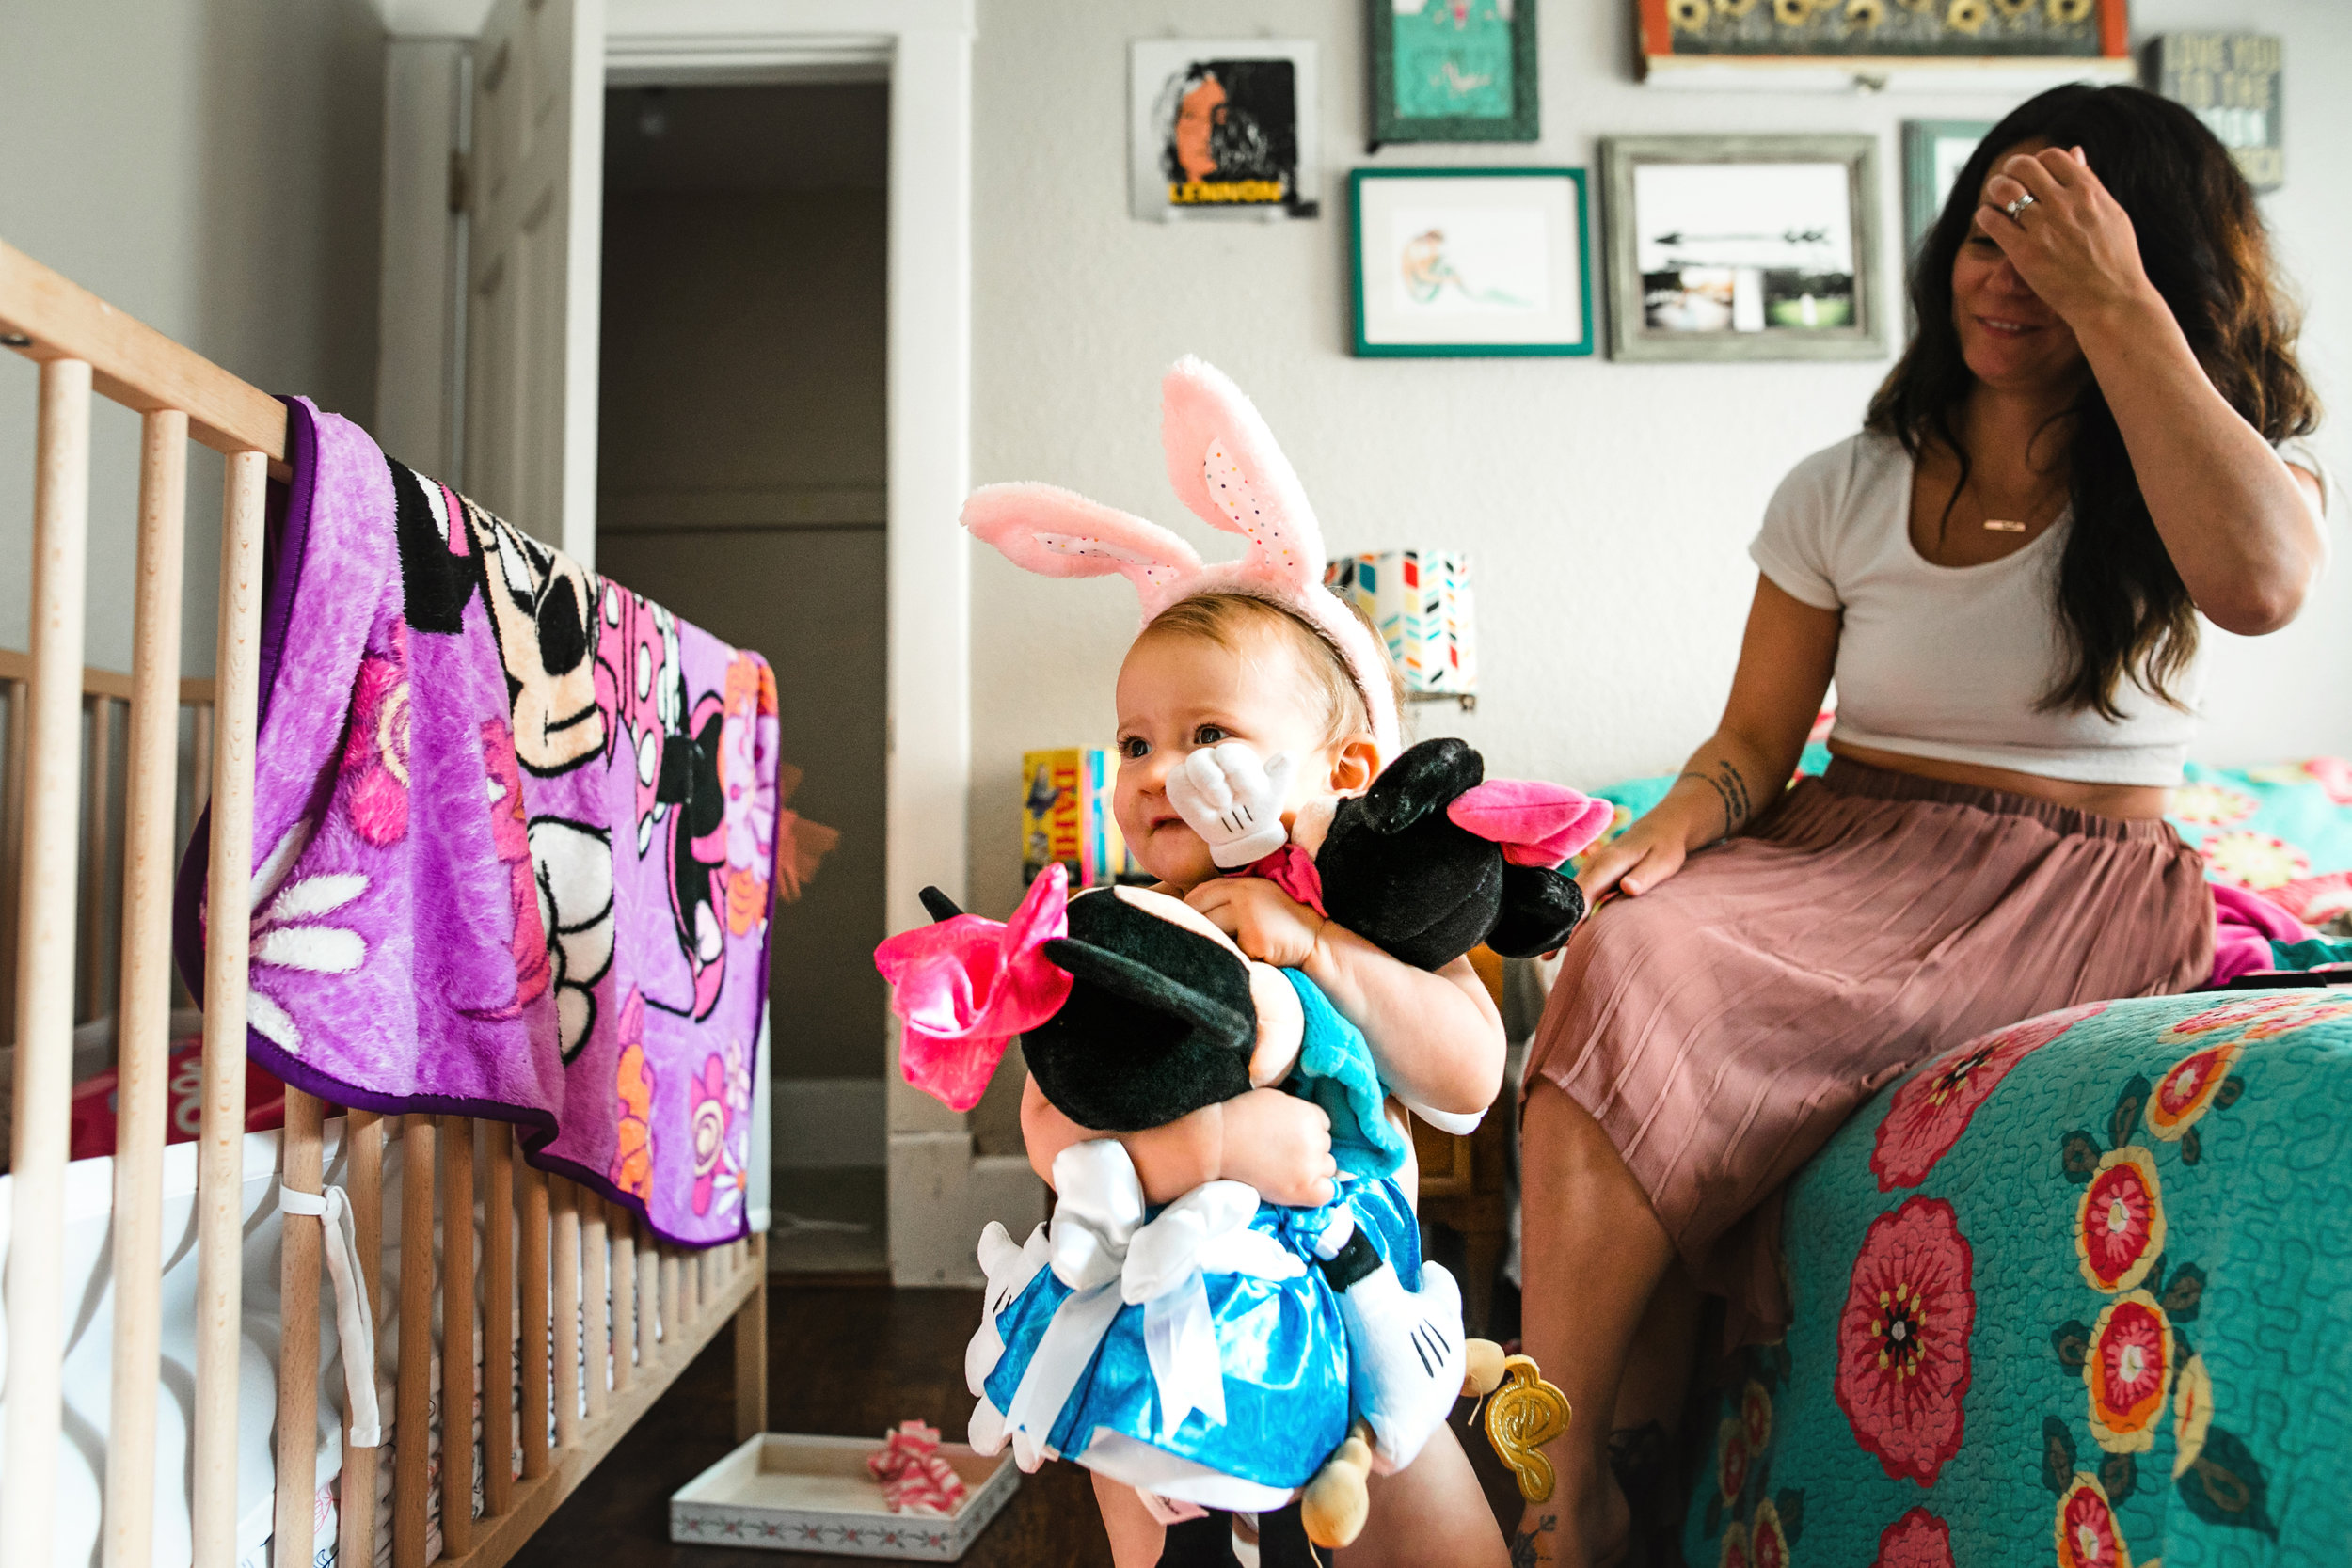 baby holds all her stuffed animals-(ZF-0126-04493-1-006).jpg